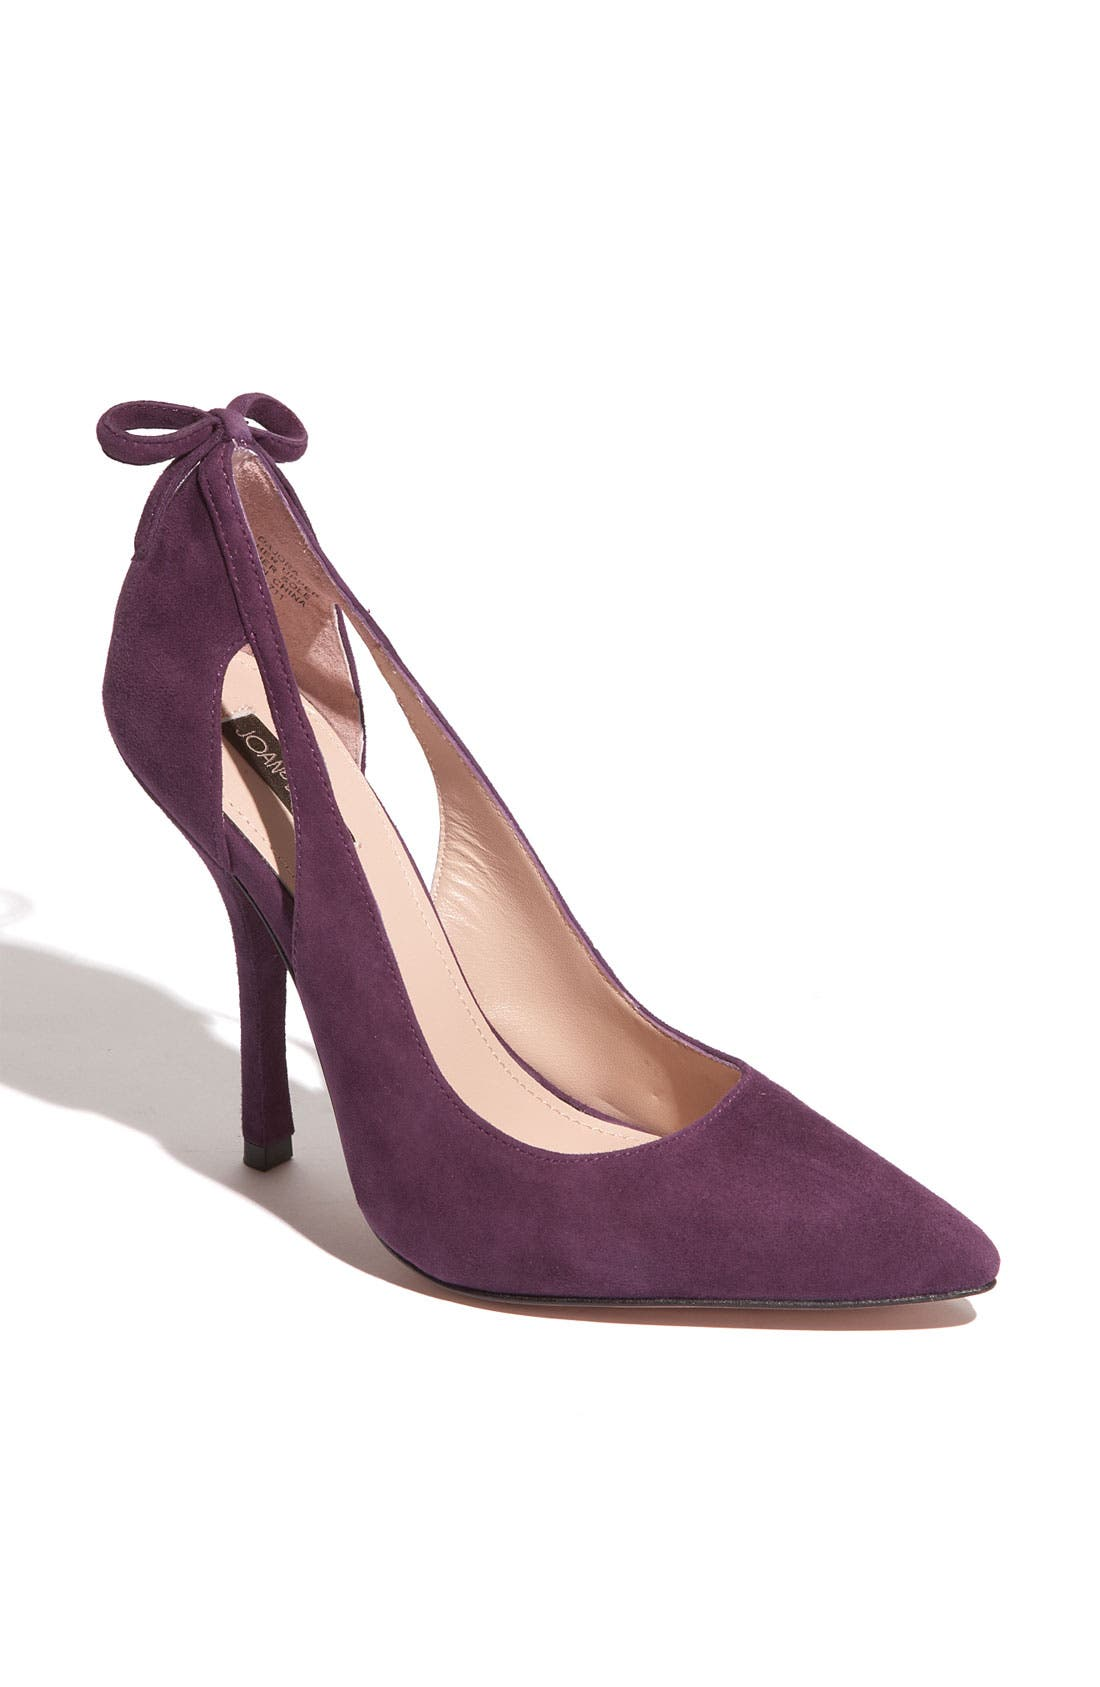 Main Image - Joan & David 'Jora' Pump